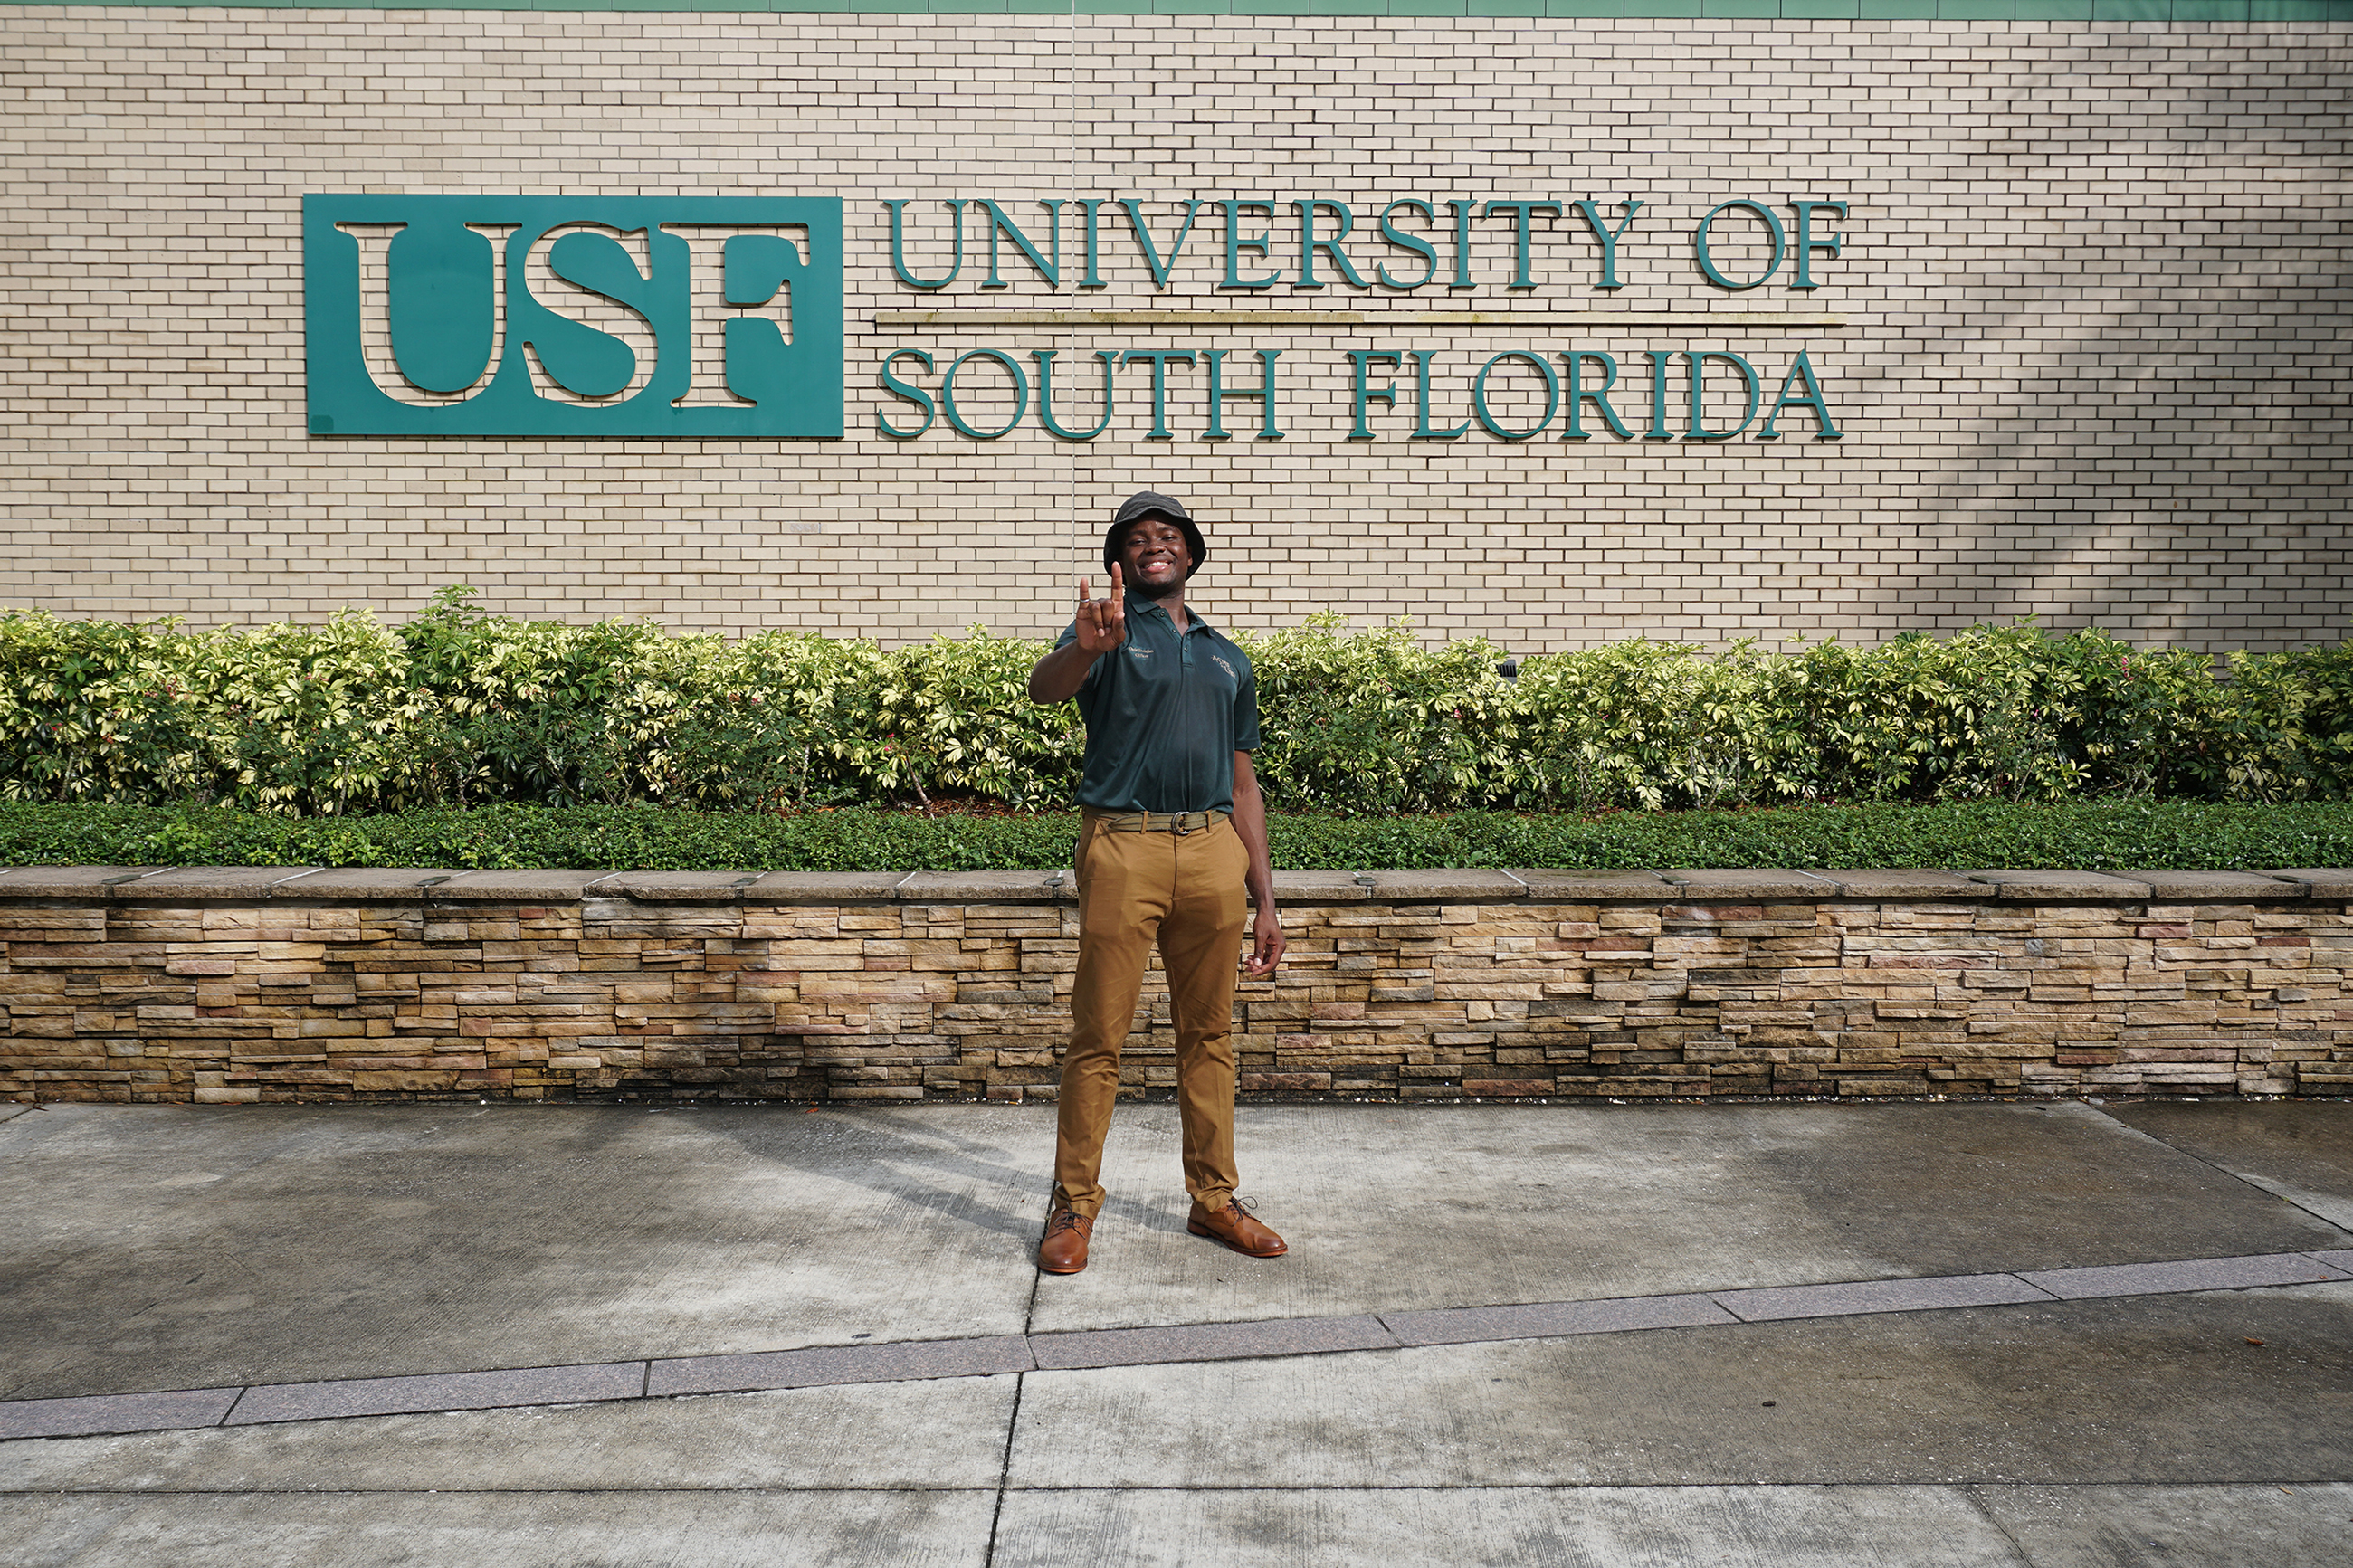 Ossie Douglas in front of the USF sign by the USF Bookstore